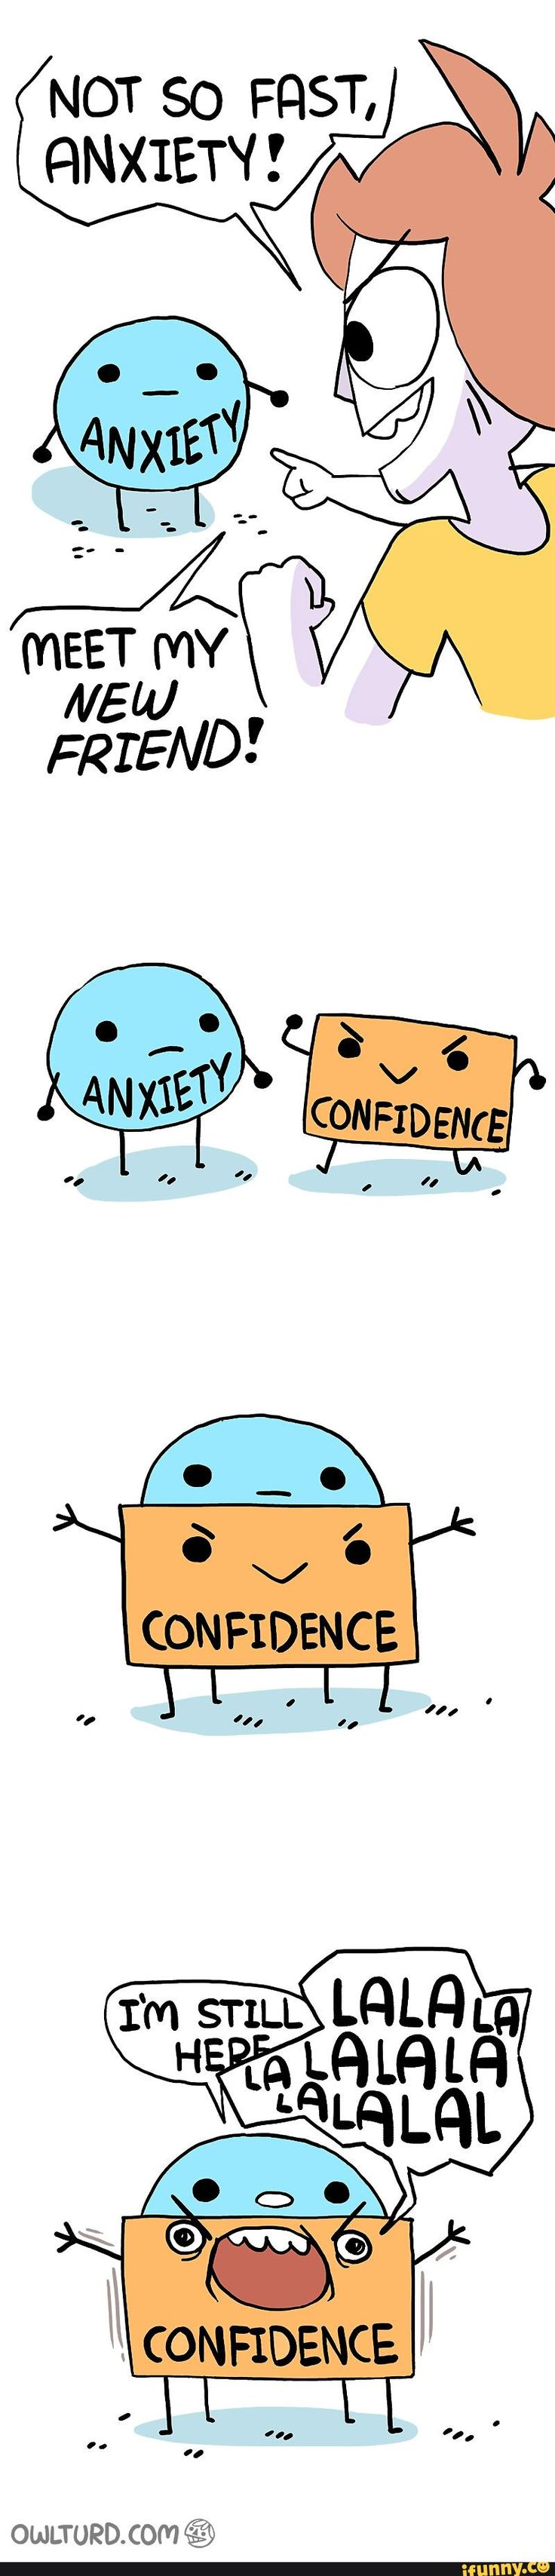 Anxiety, cover, with, confidence